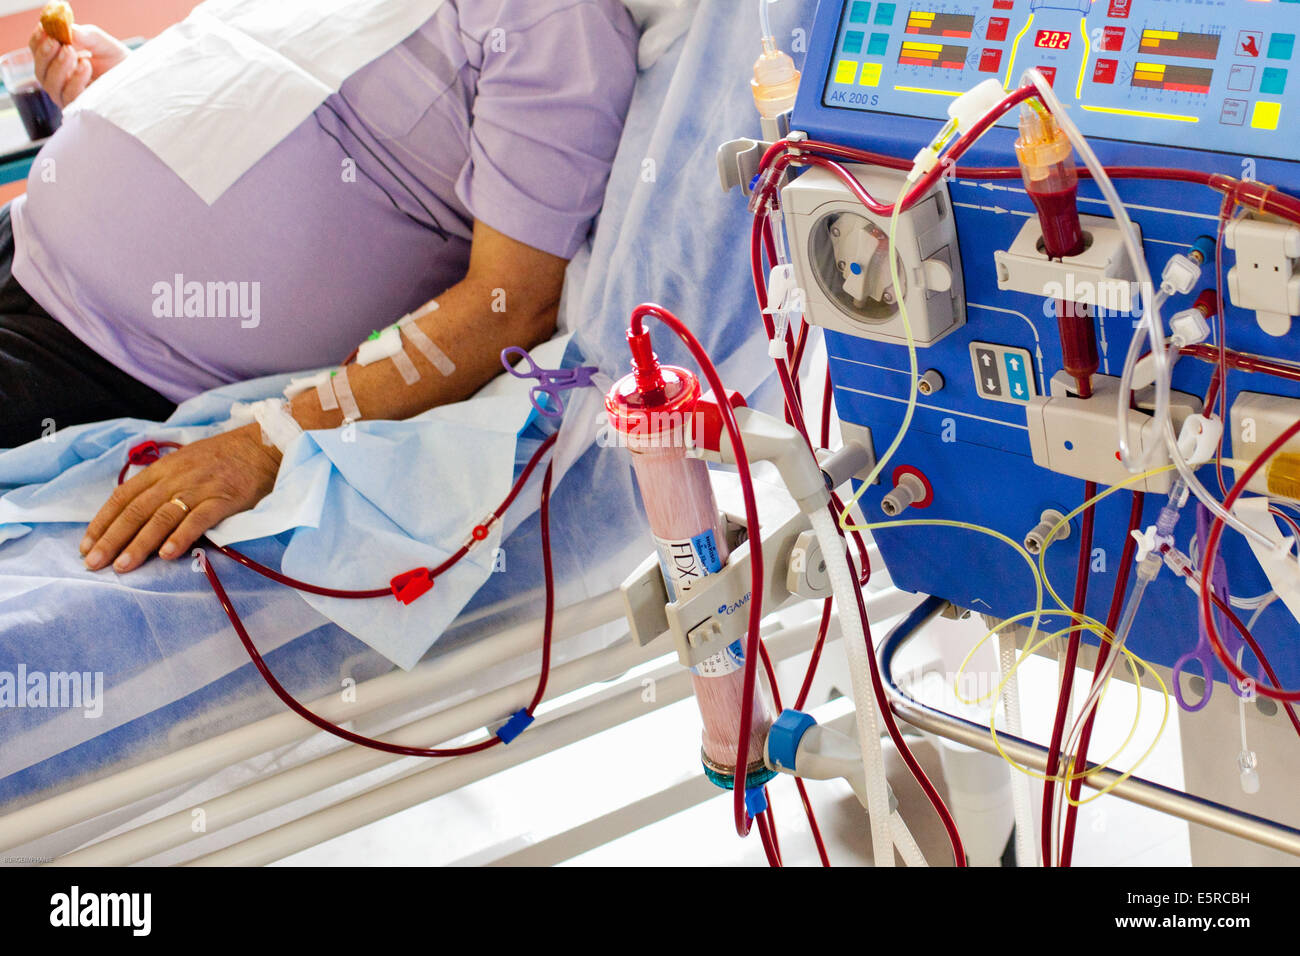 Patient hemodialysis and transfusion for anemia, Limoges hospital, France. - Stock Image